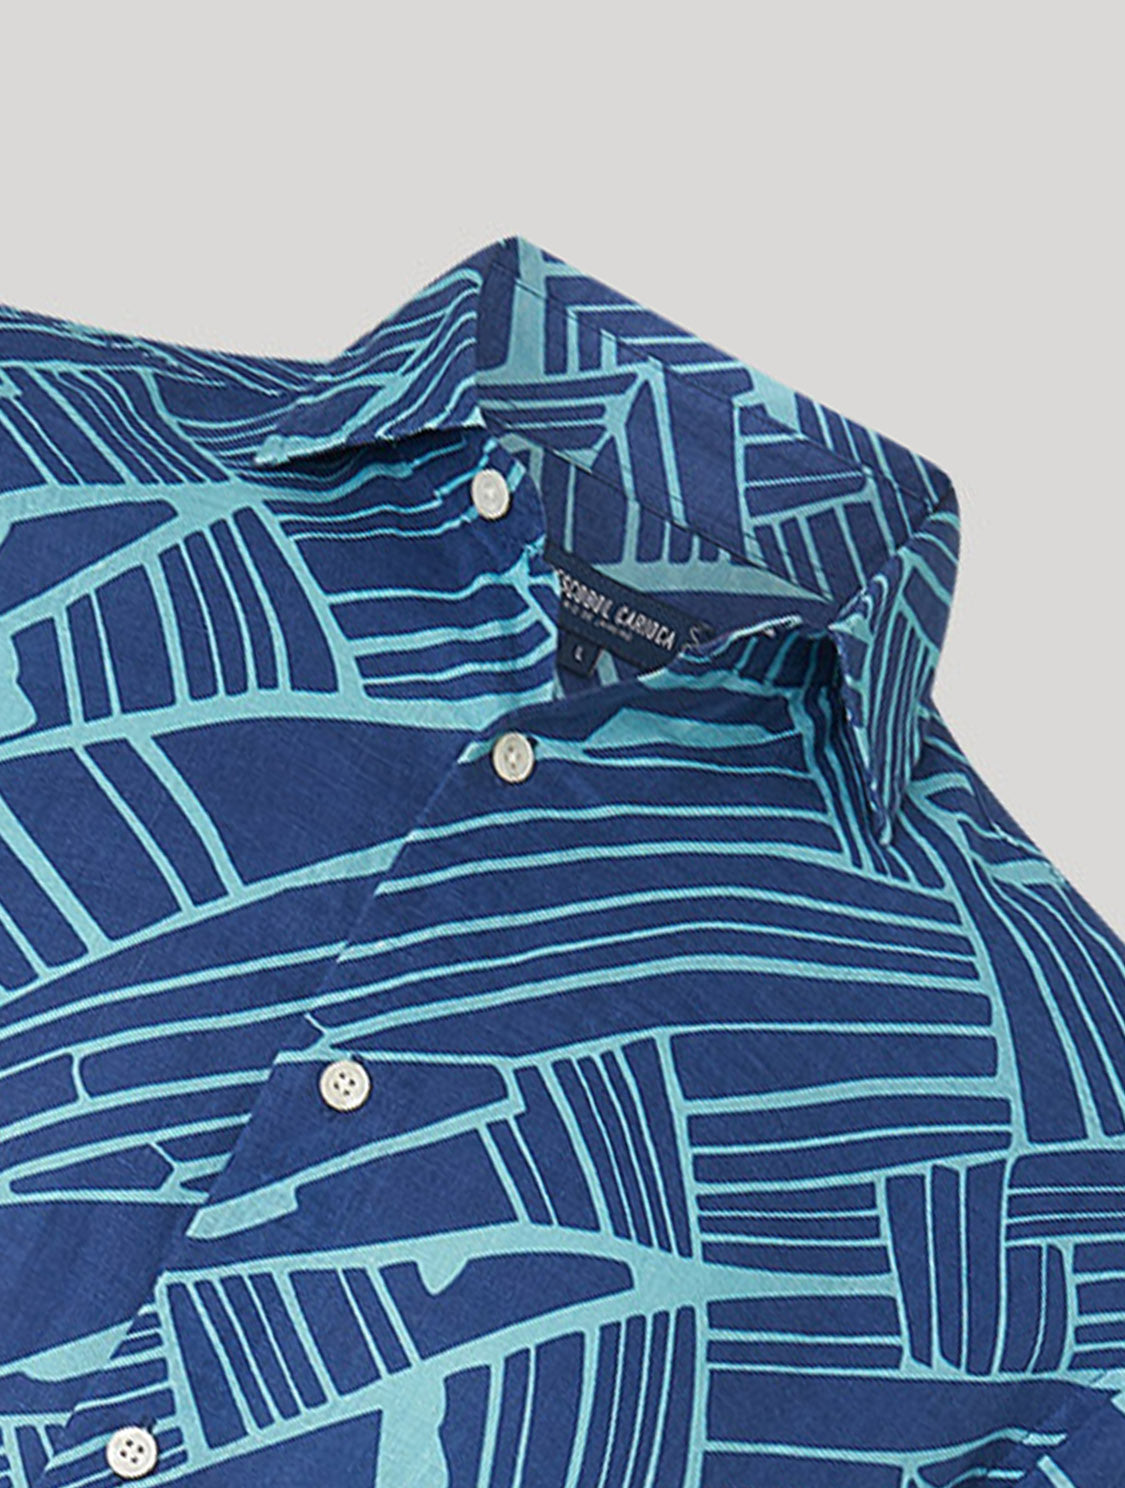 ANTONIO SHIRT ANGLES PRINT